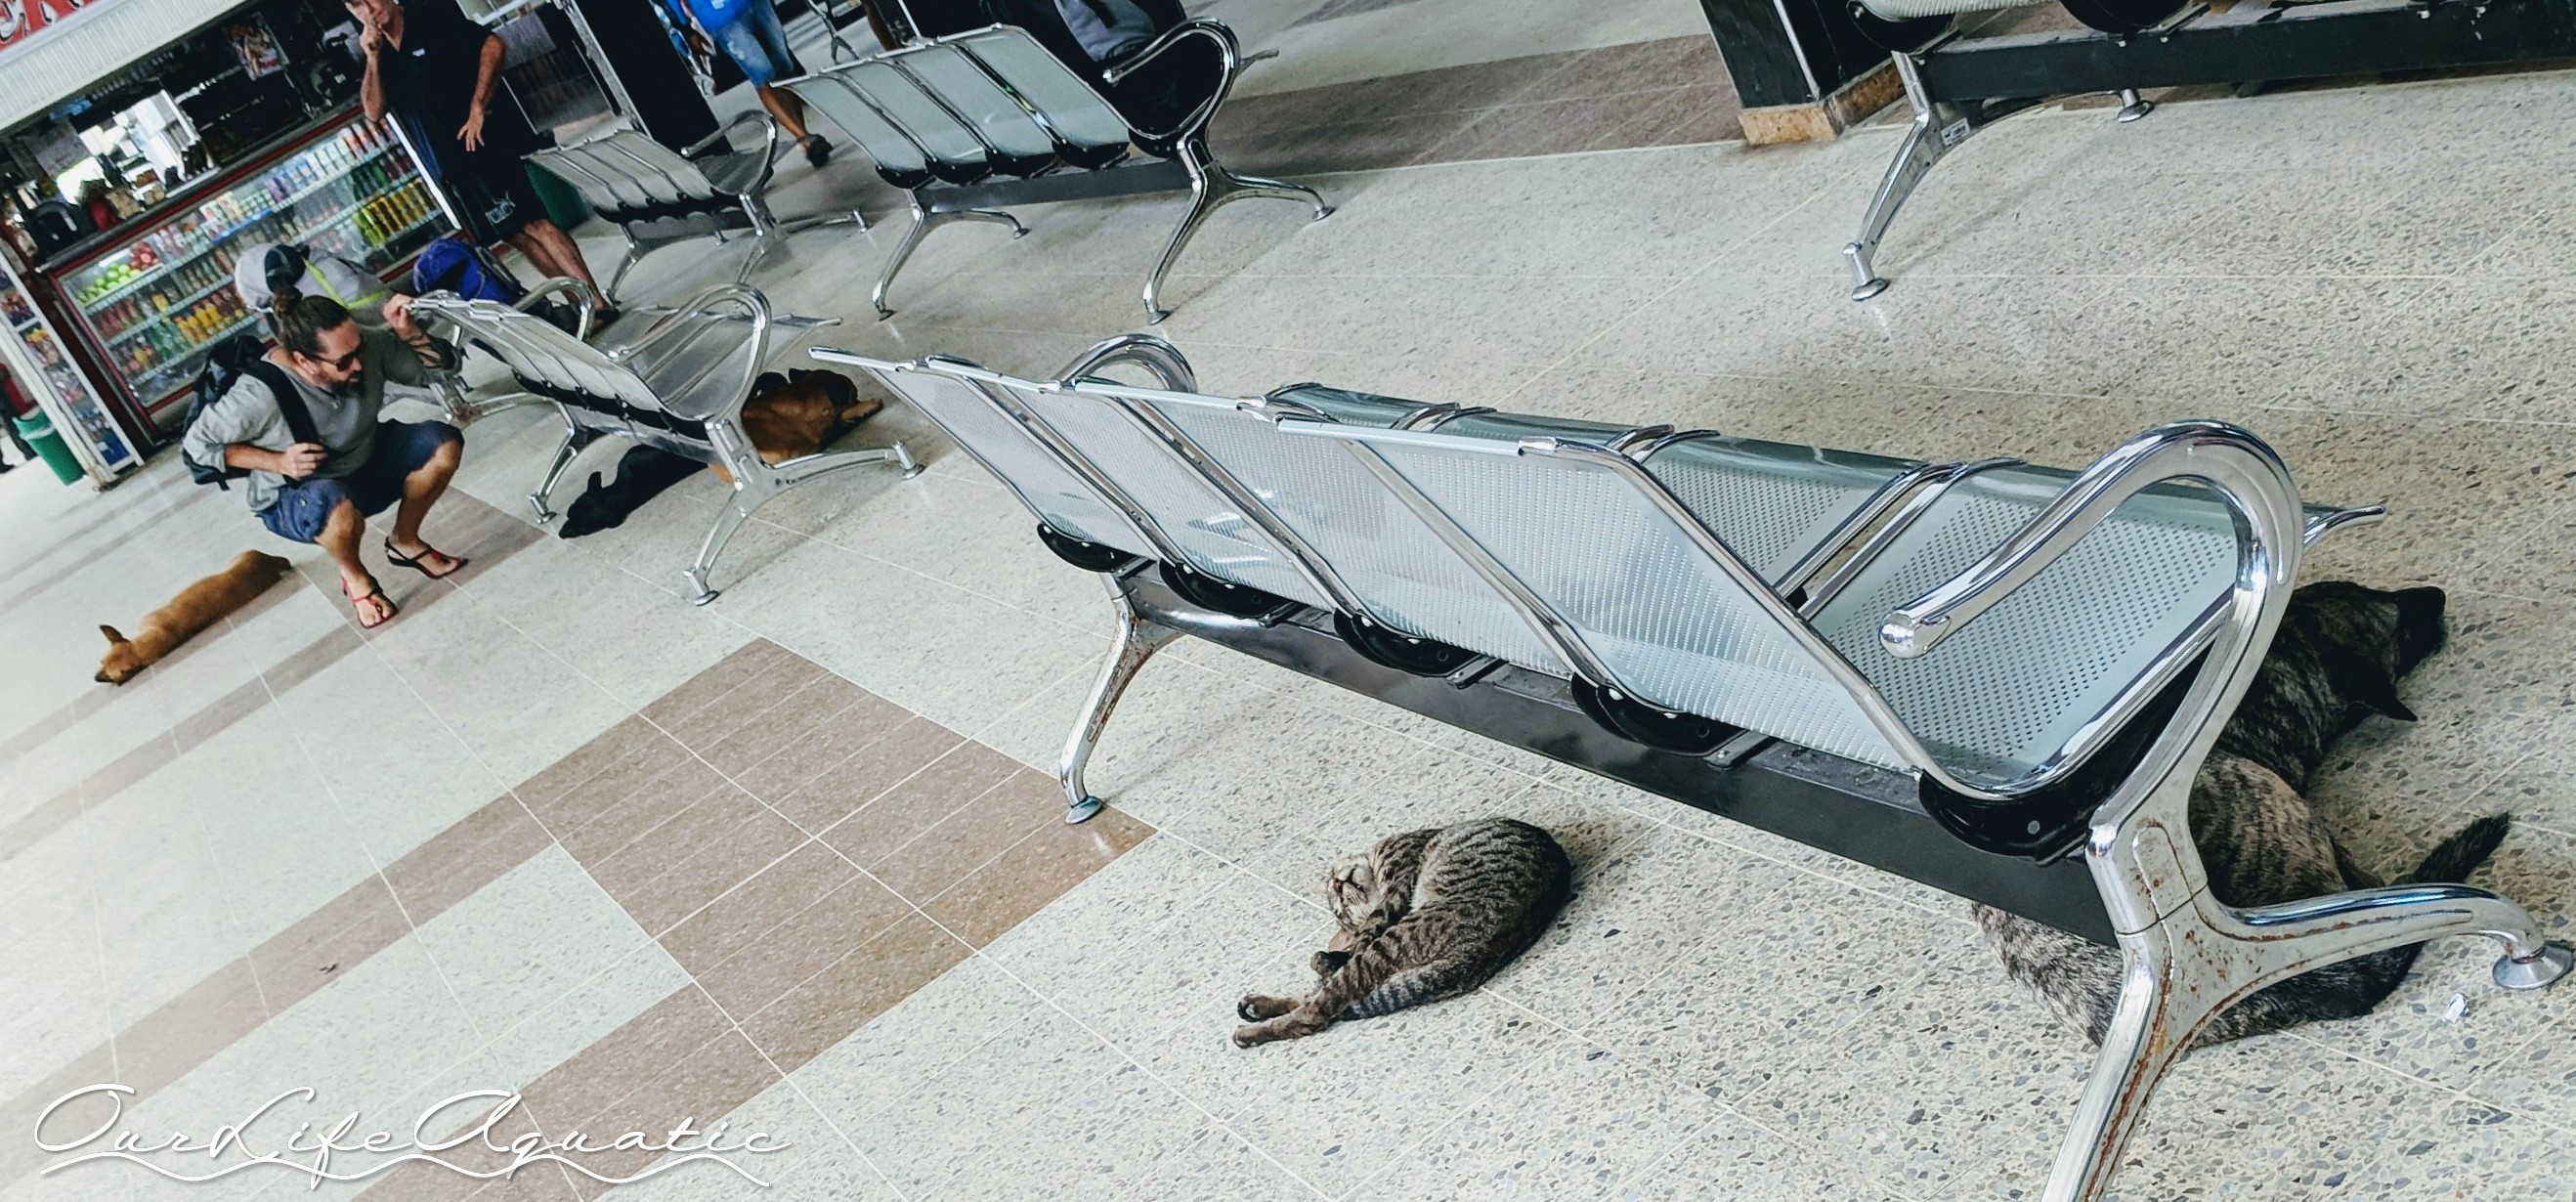 Bus station full of friendly critters